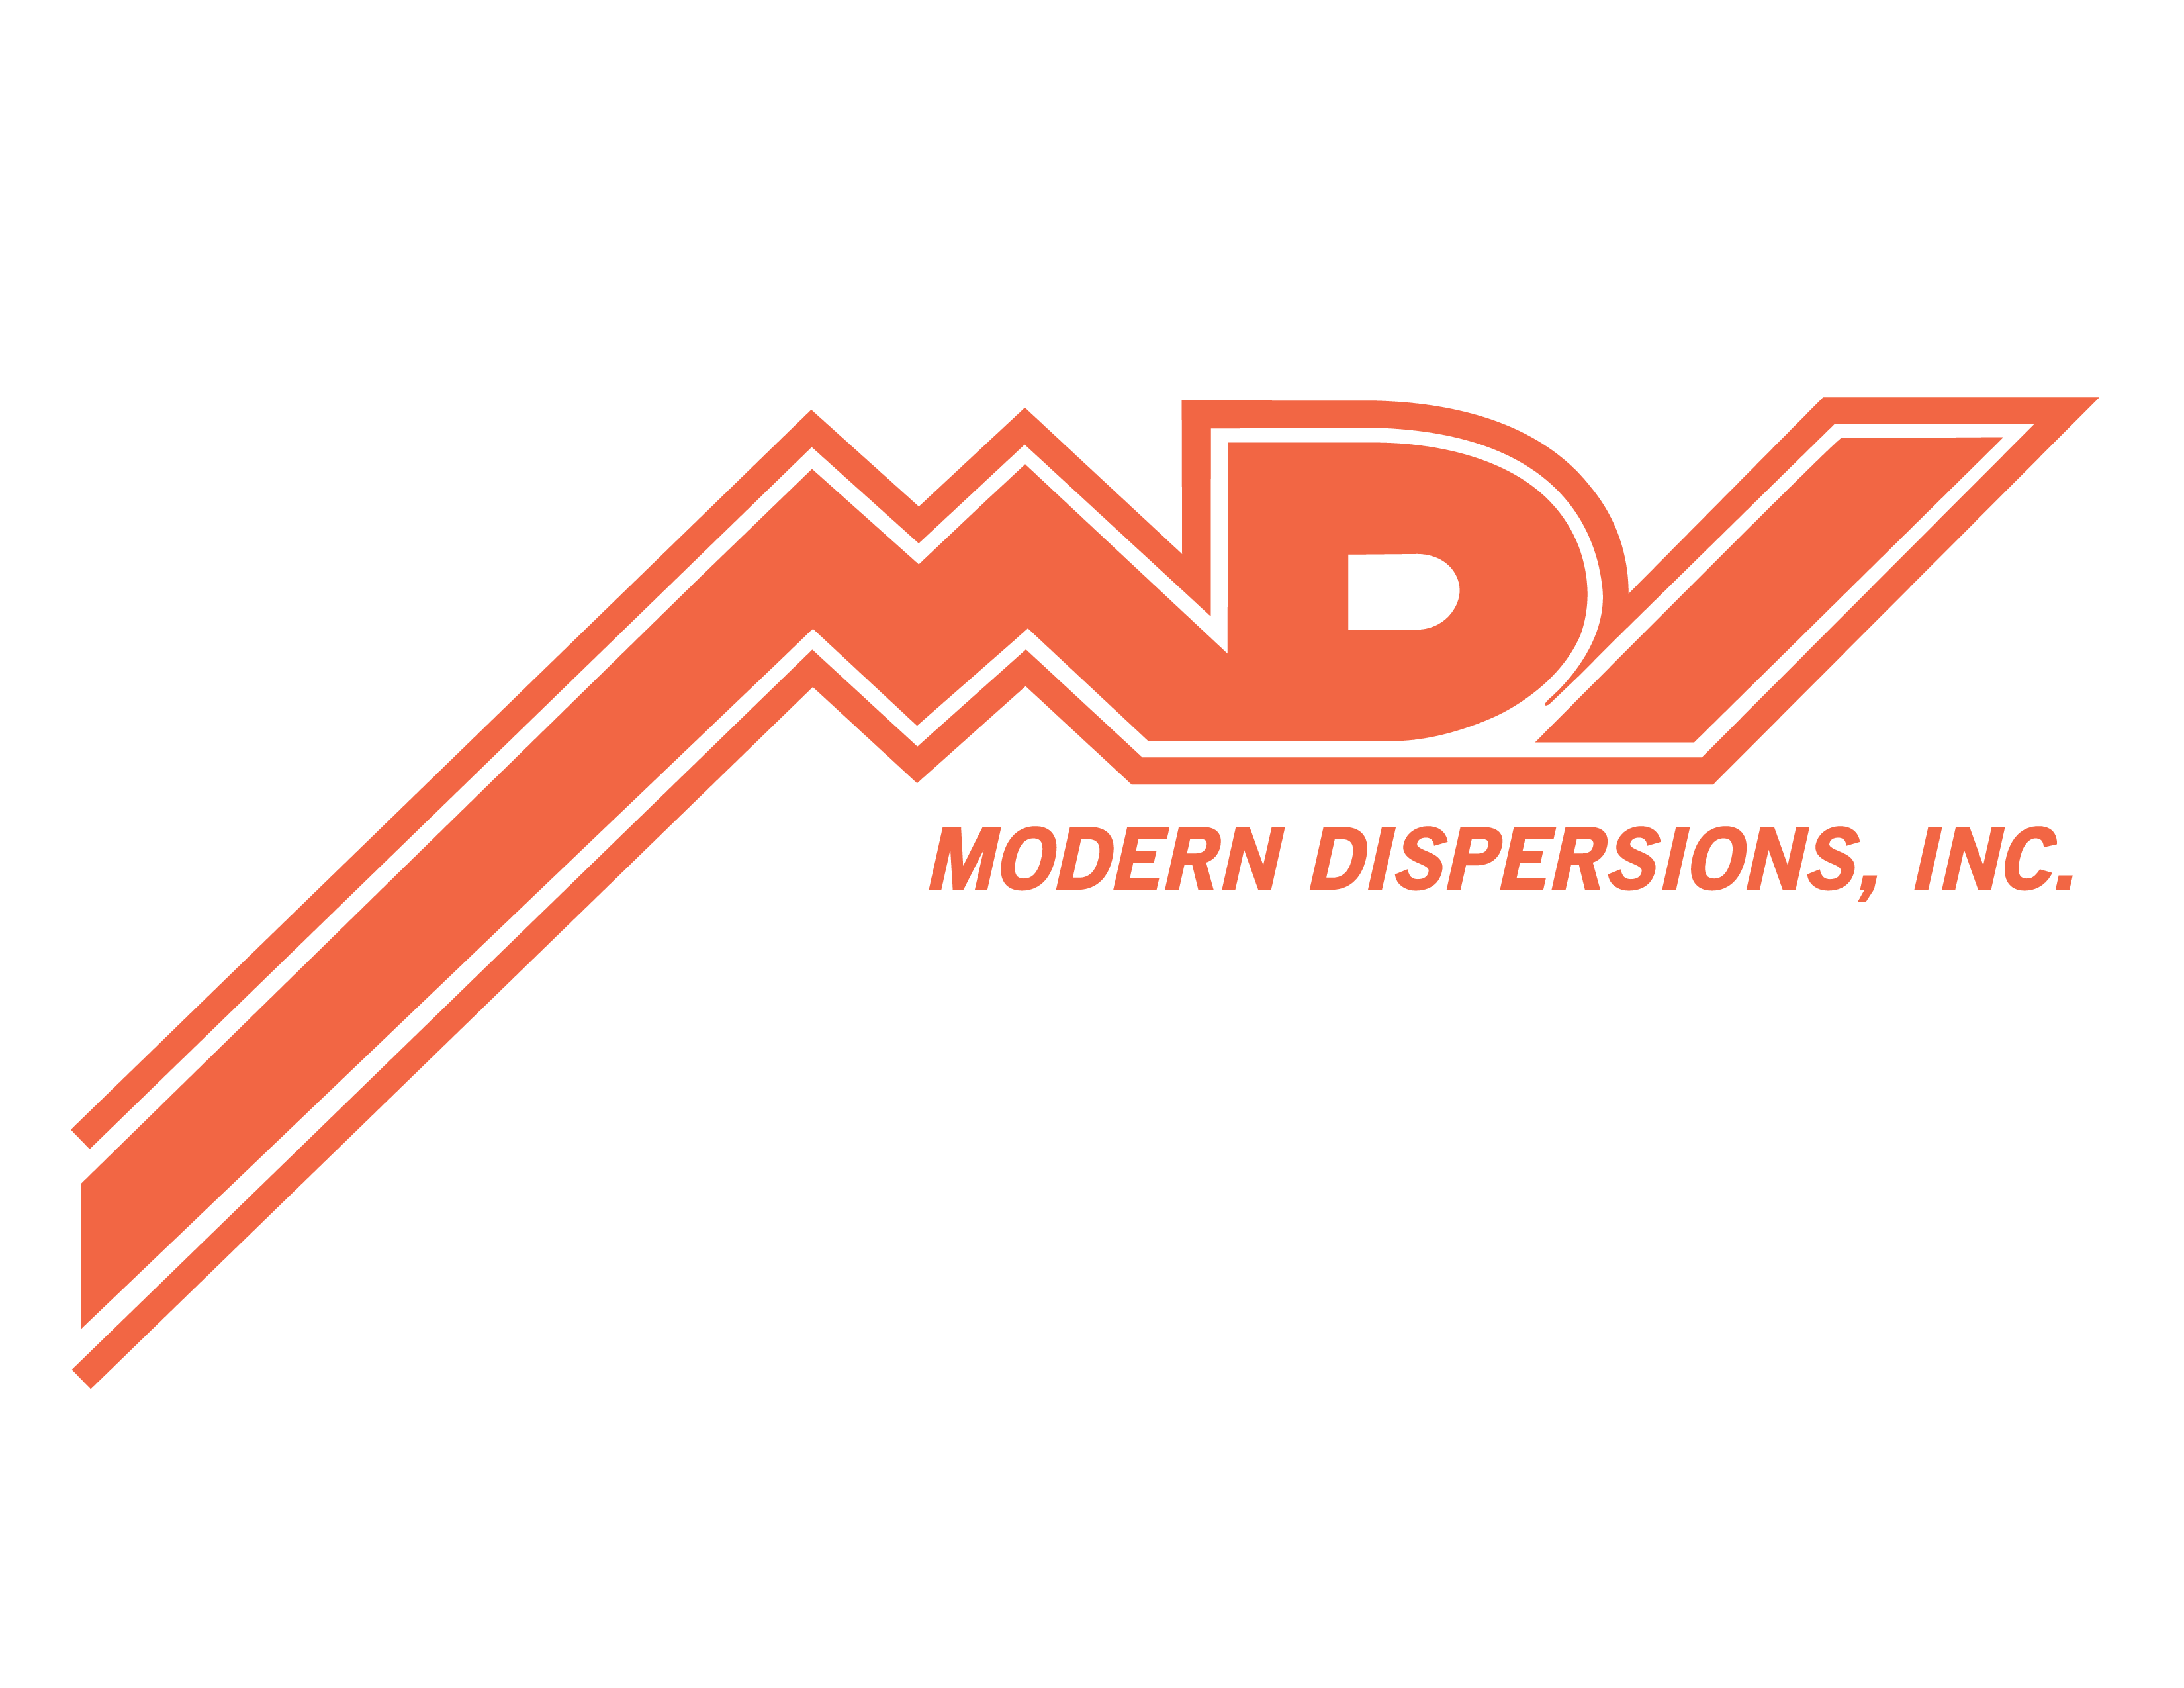 Modern Dispersions, Inc. in Leominster, MA. Thermoplastics compounding & concentrates, including carbon black masterbatches, white concentrates & specialty additive compounds.